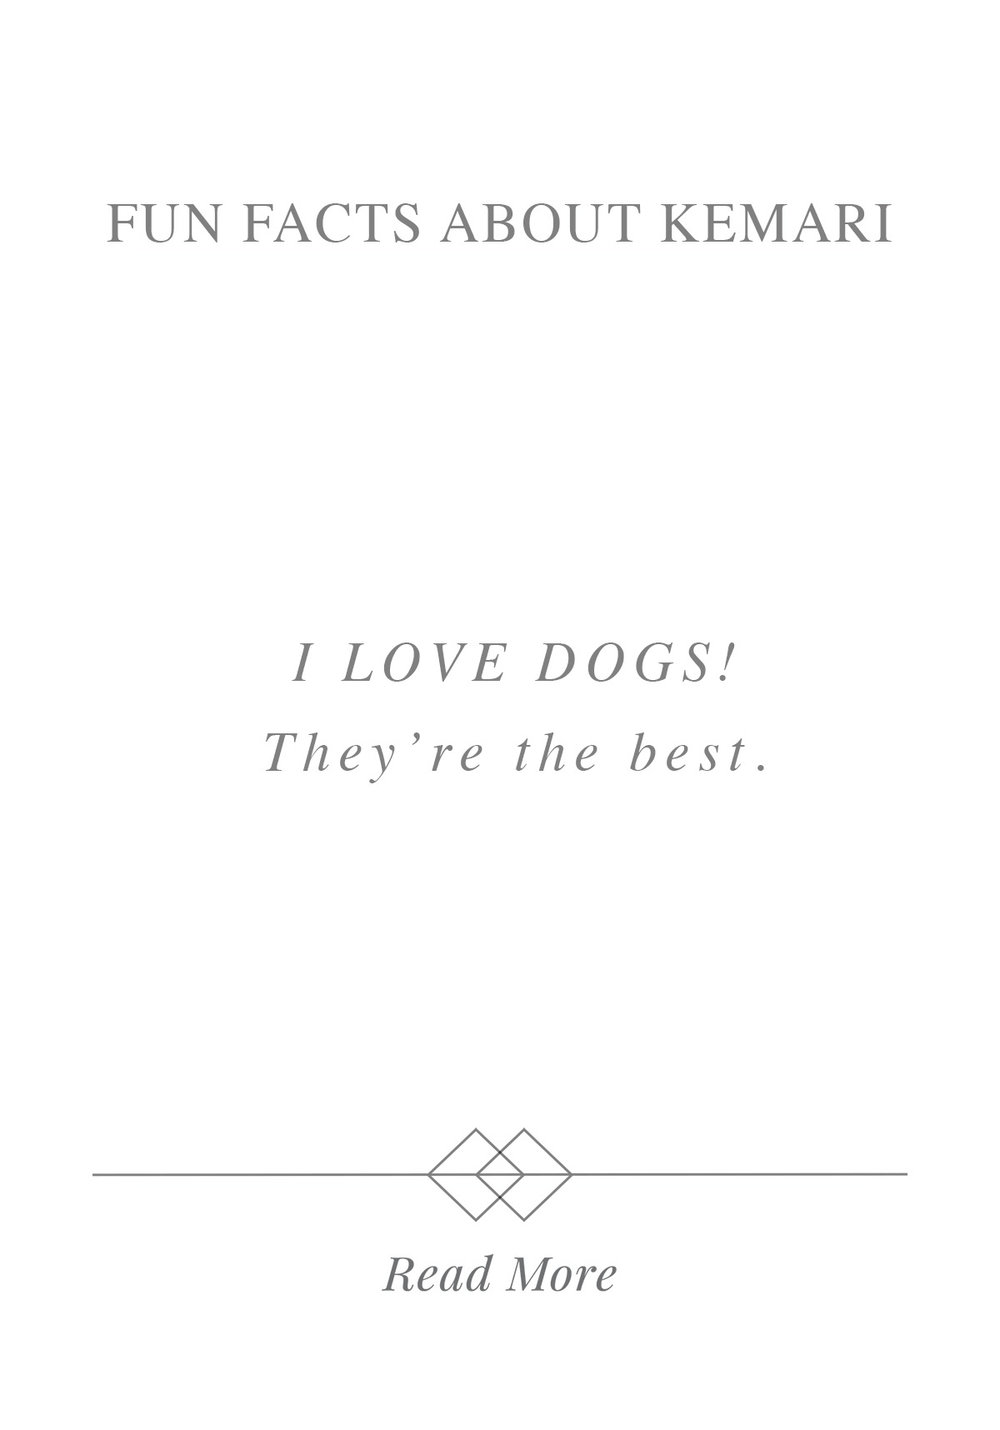 fun facts kemari8.jpg